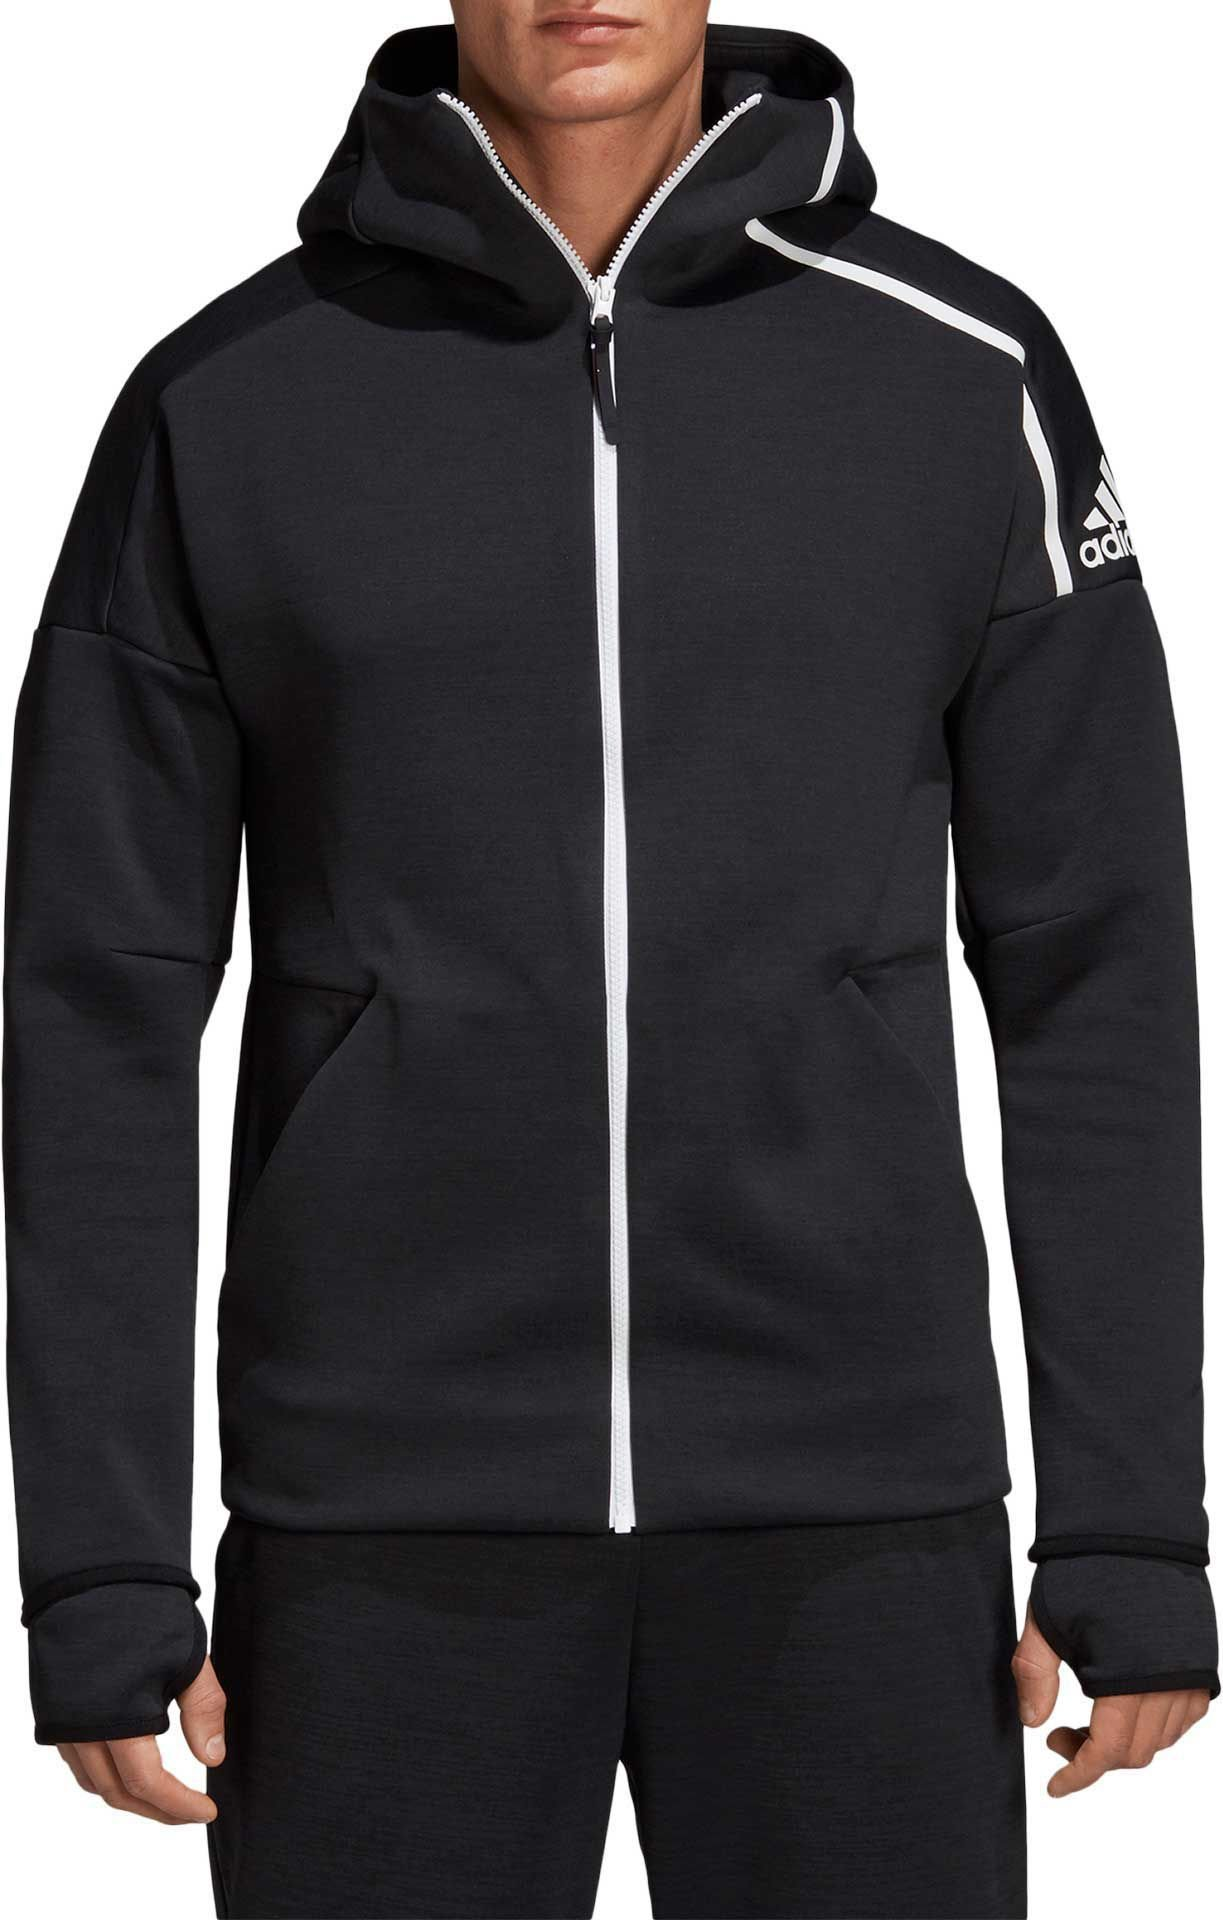 adidas Men's ZNE Hoodie Zne Heather/Black Small